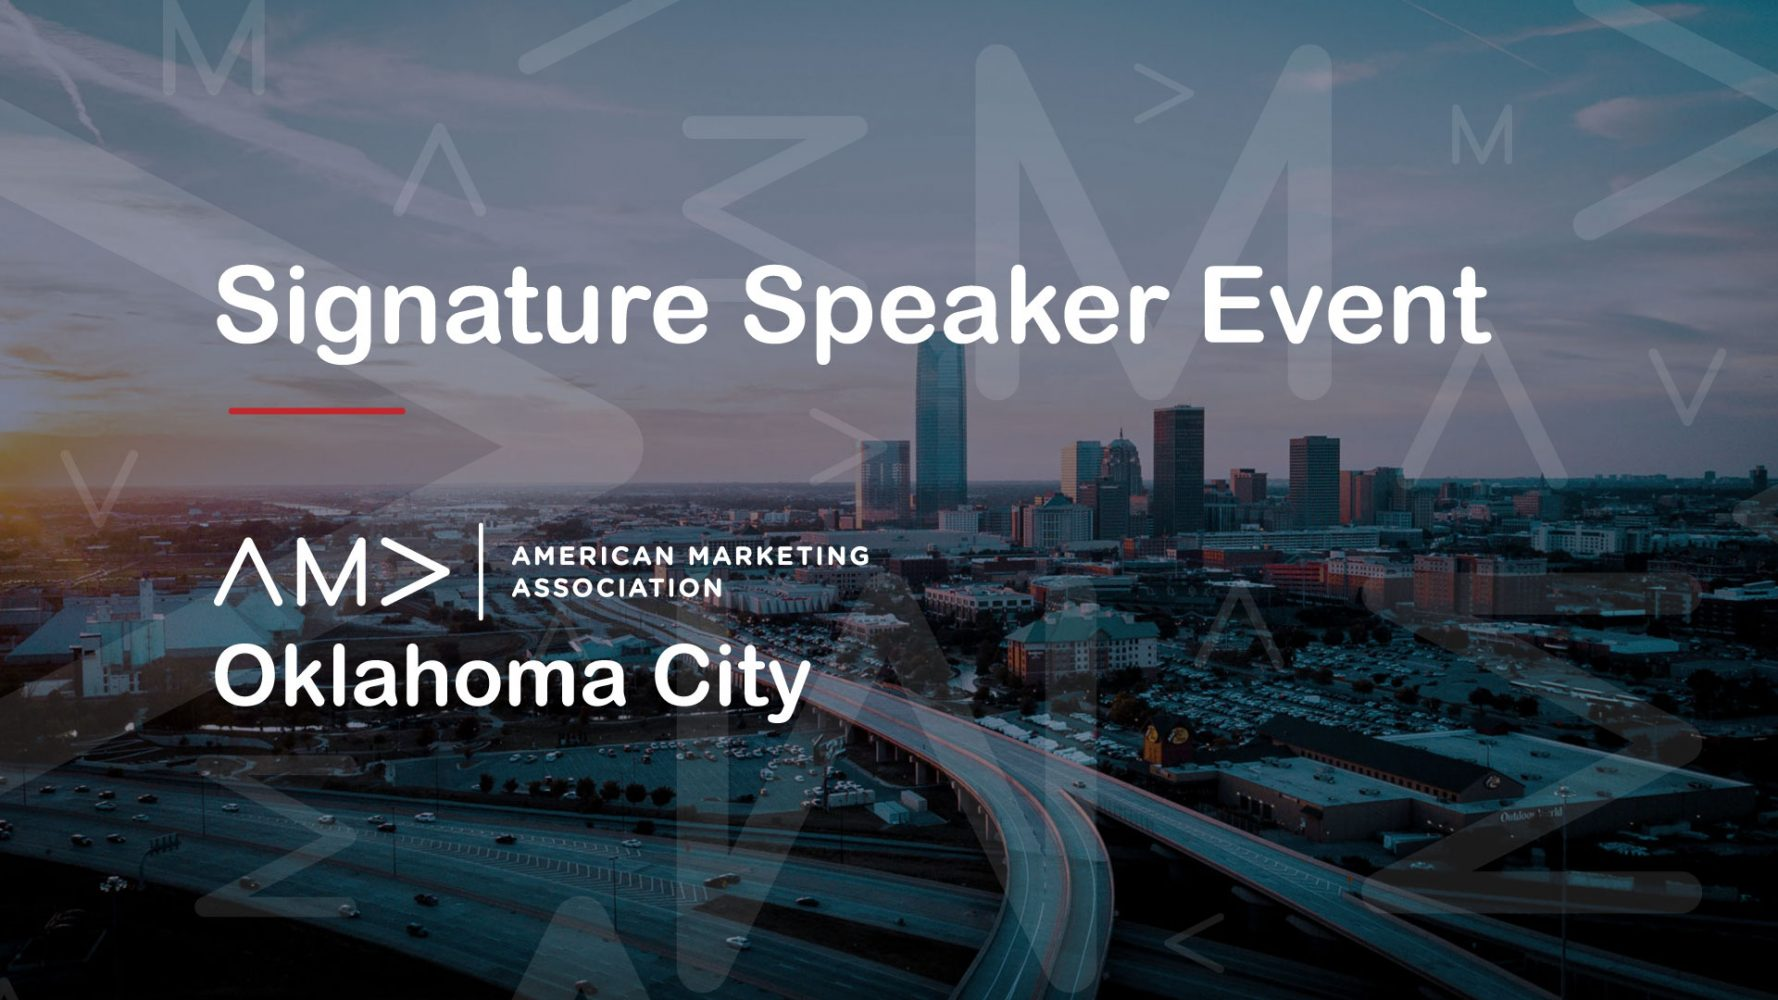 Save the Date - November 8th Signature Speaker Event!